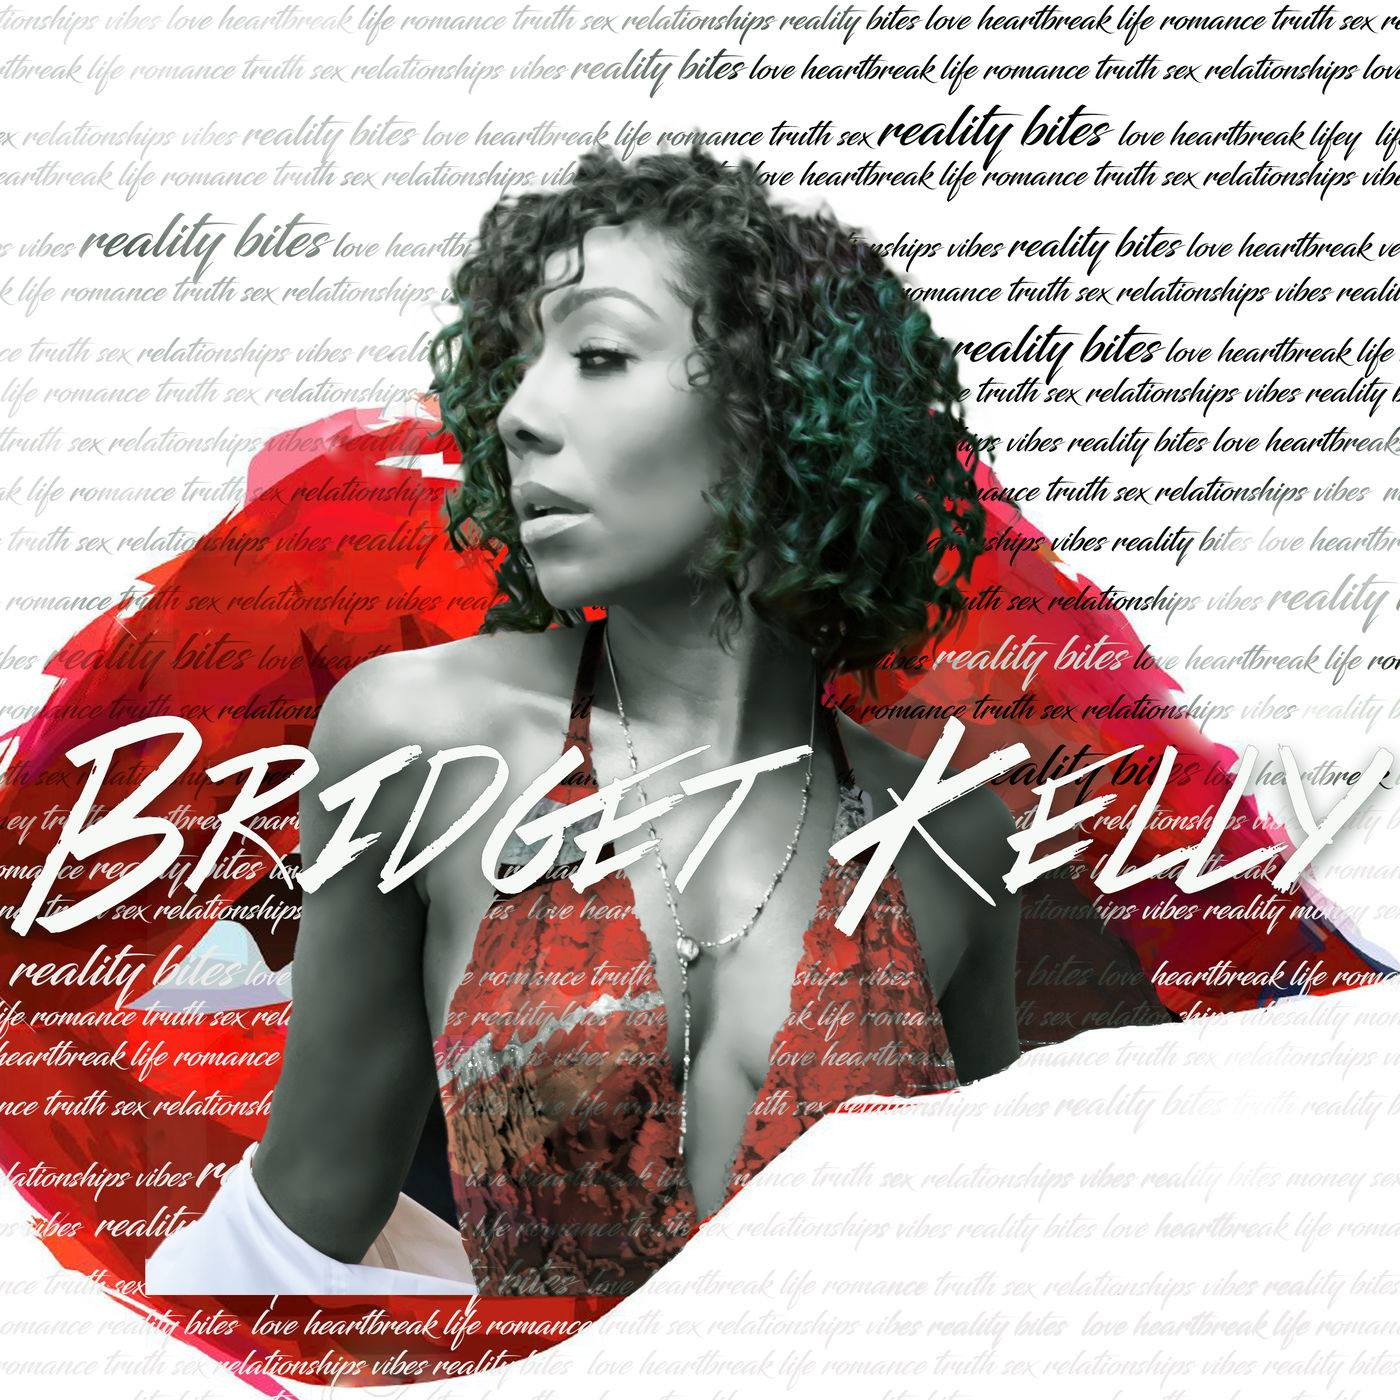 Bridget Kelly Reality Bites